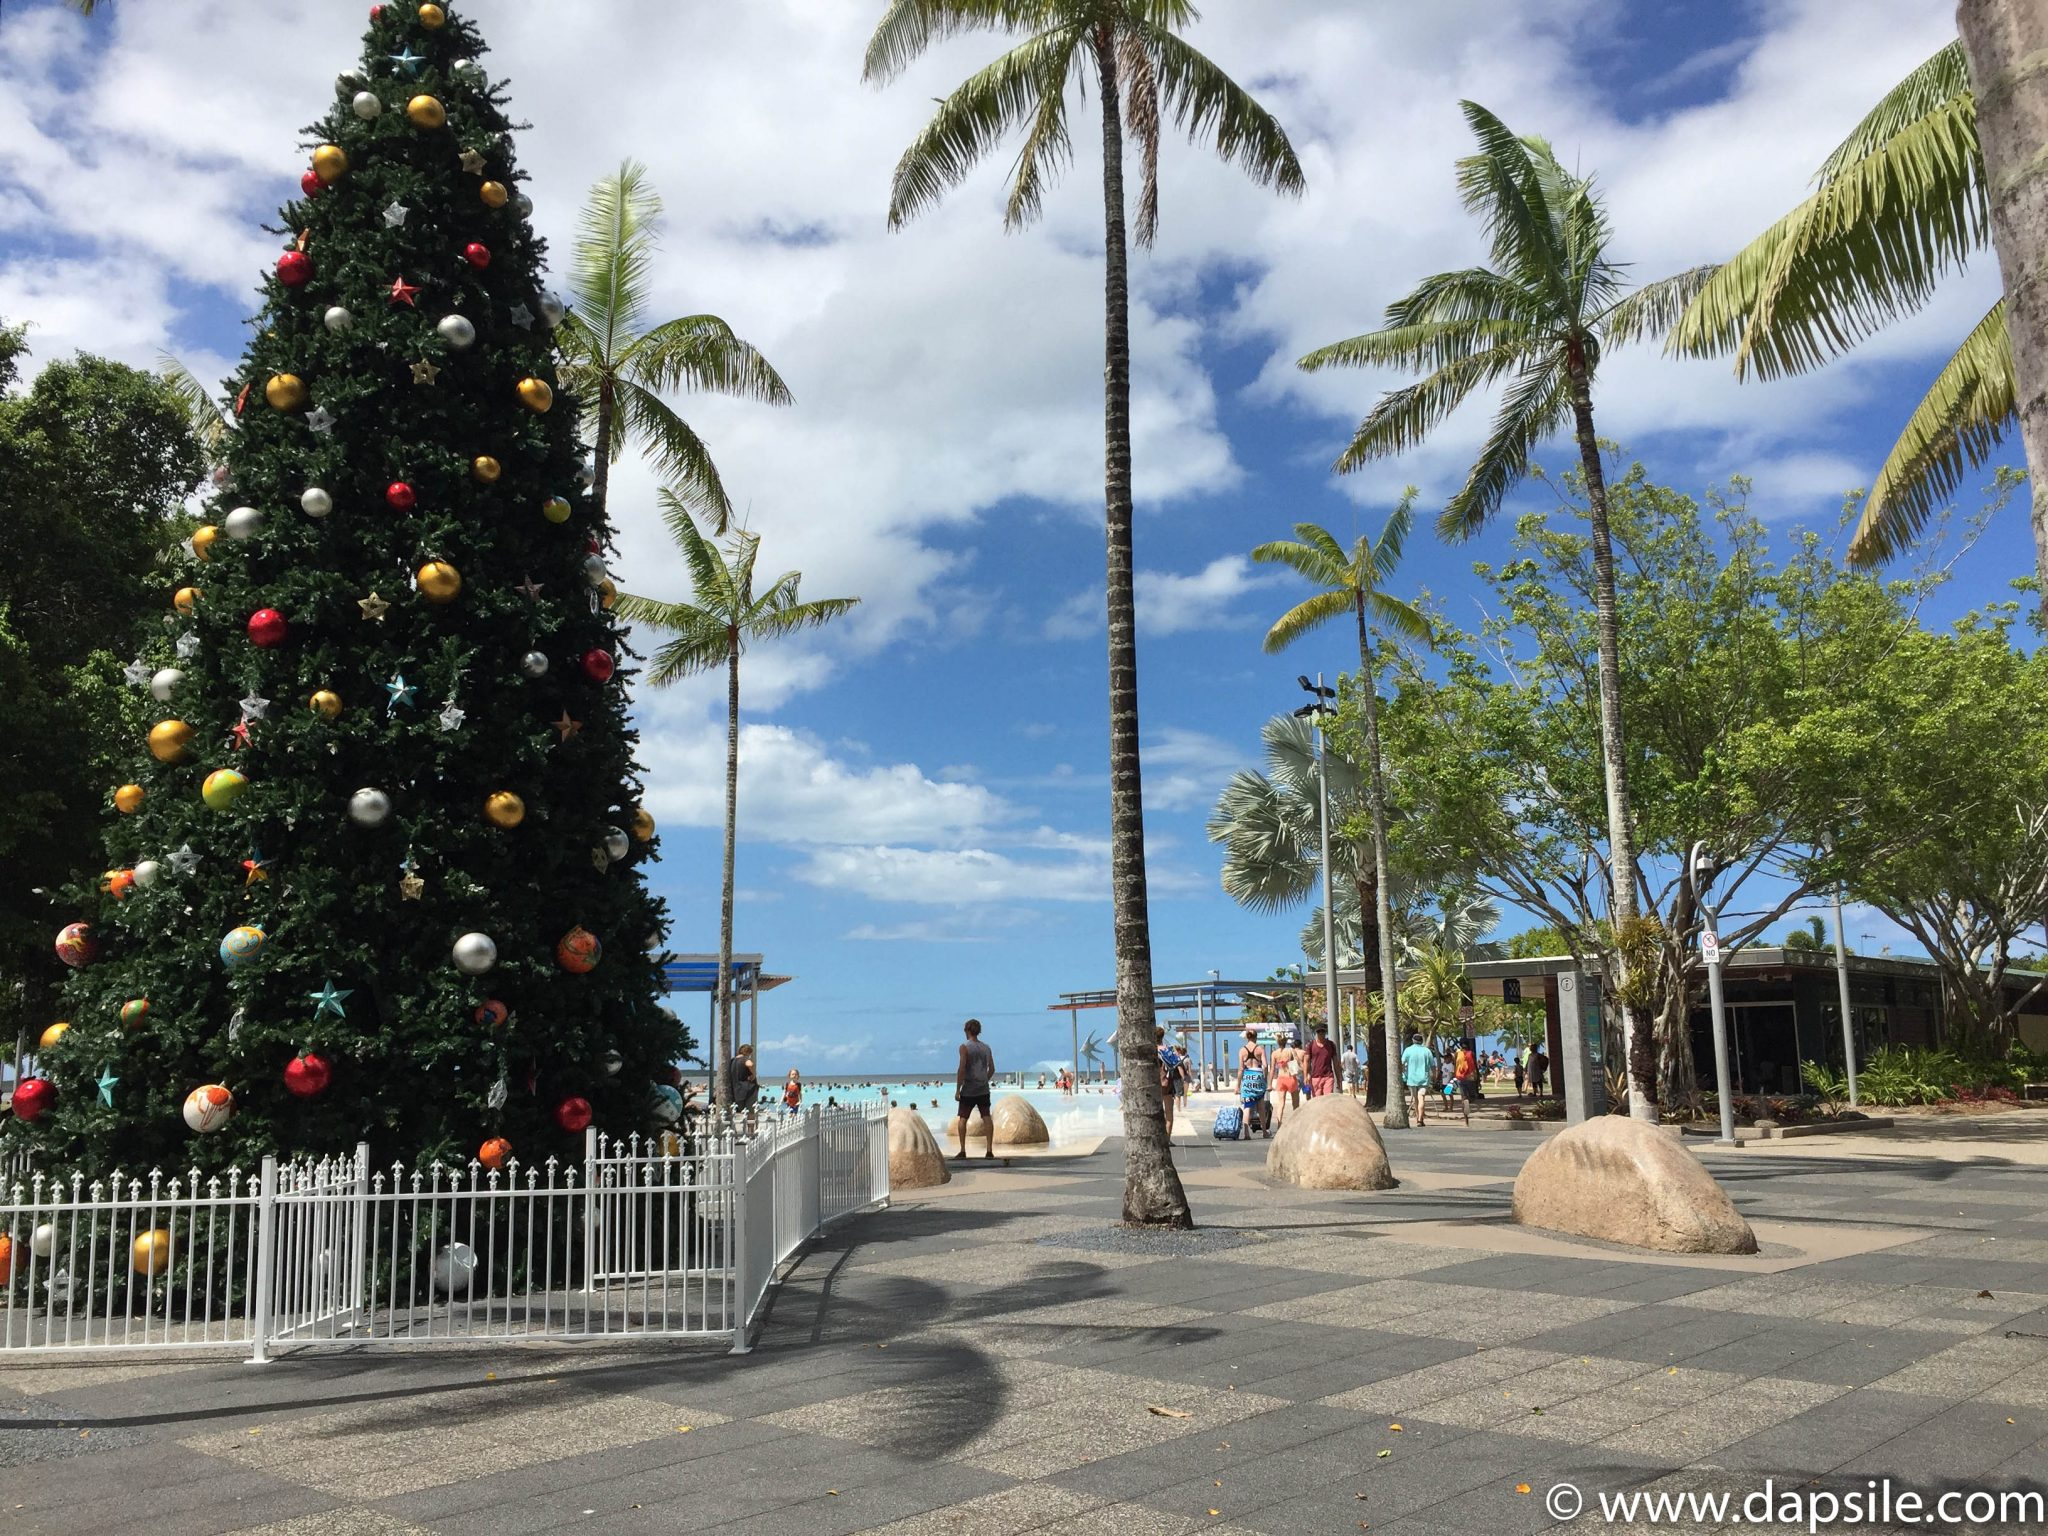 Cairns and the Surrounding Area Christmas Tree and Esplanade